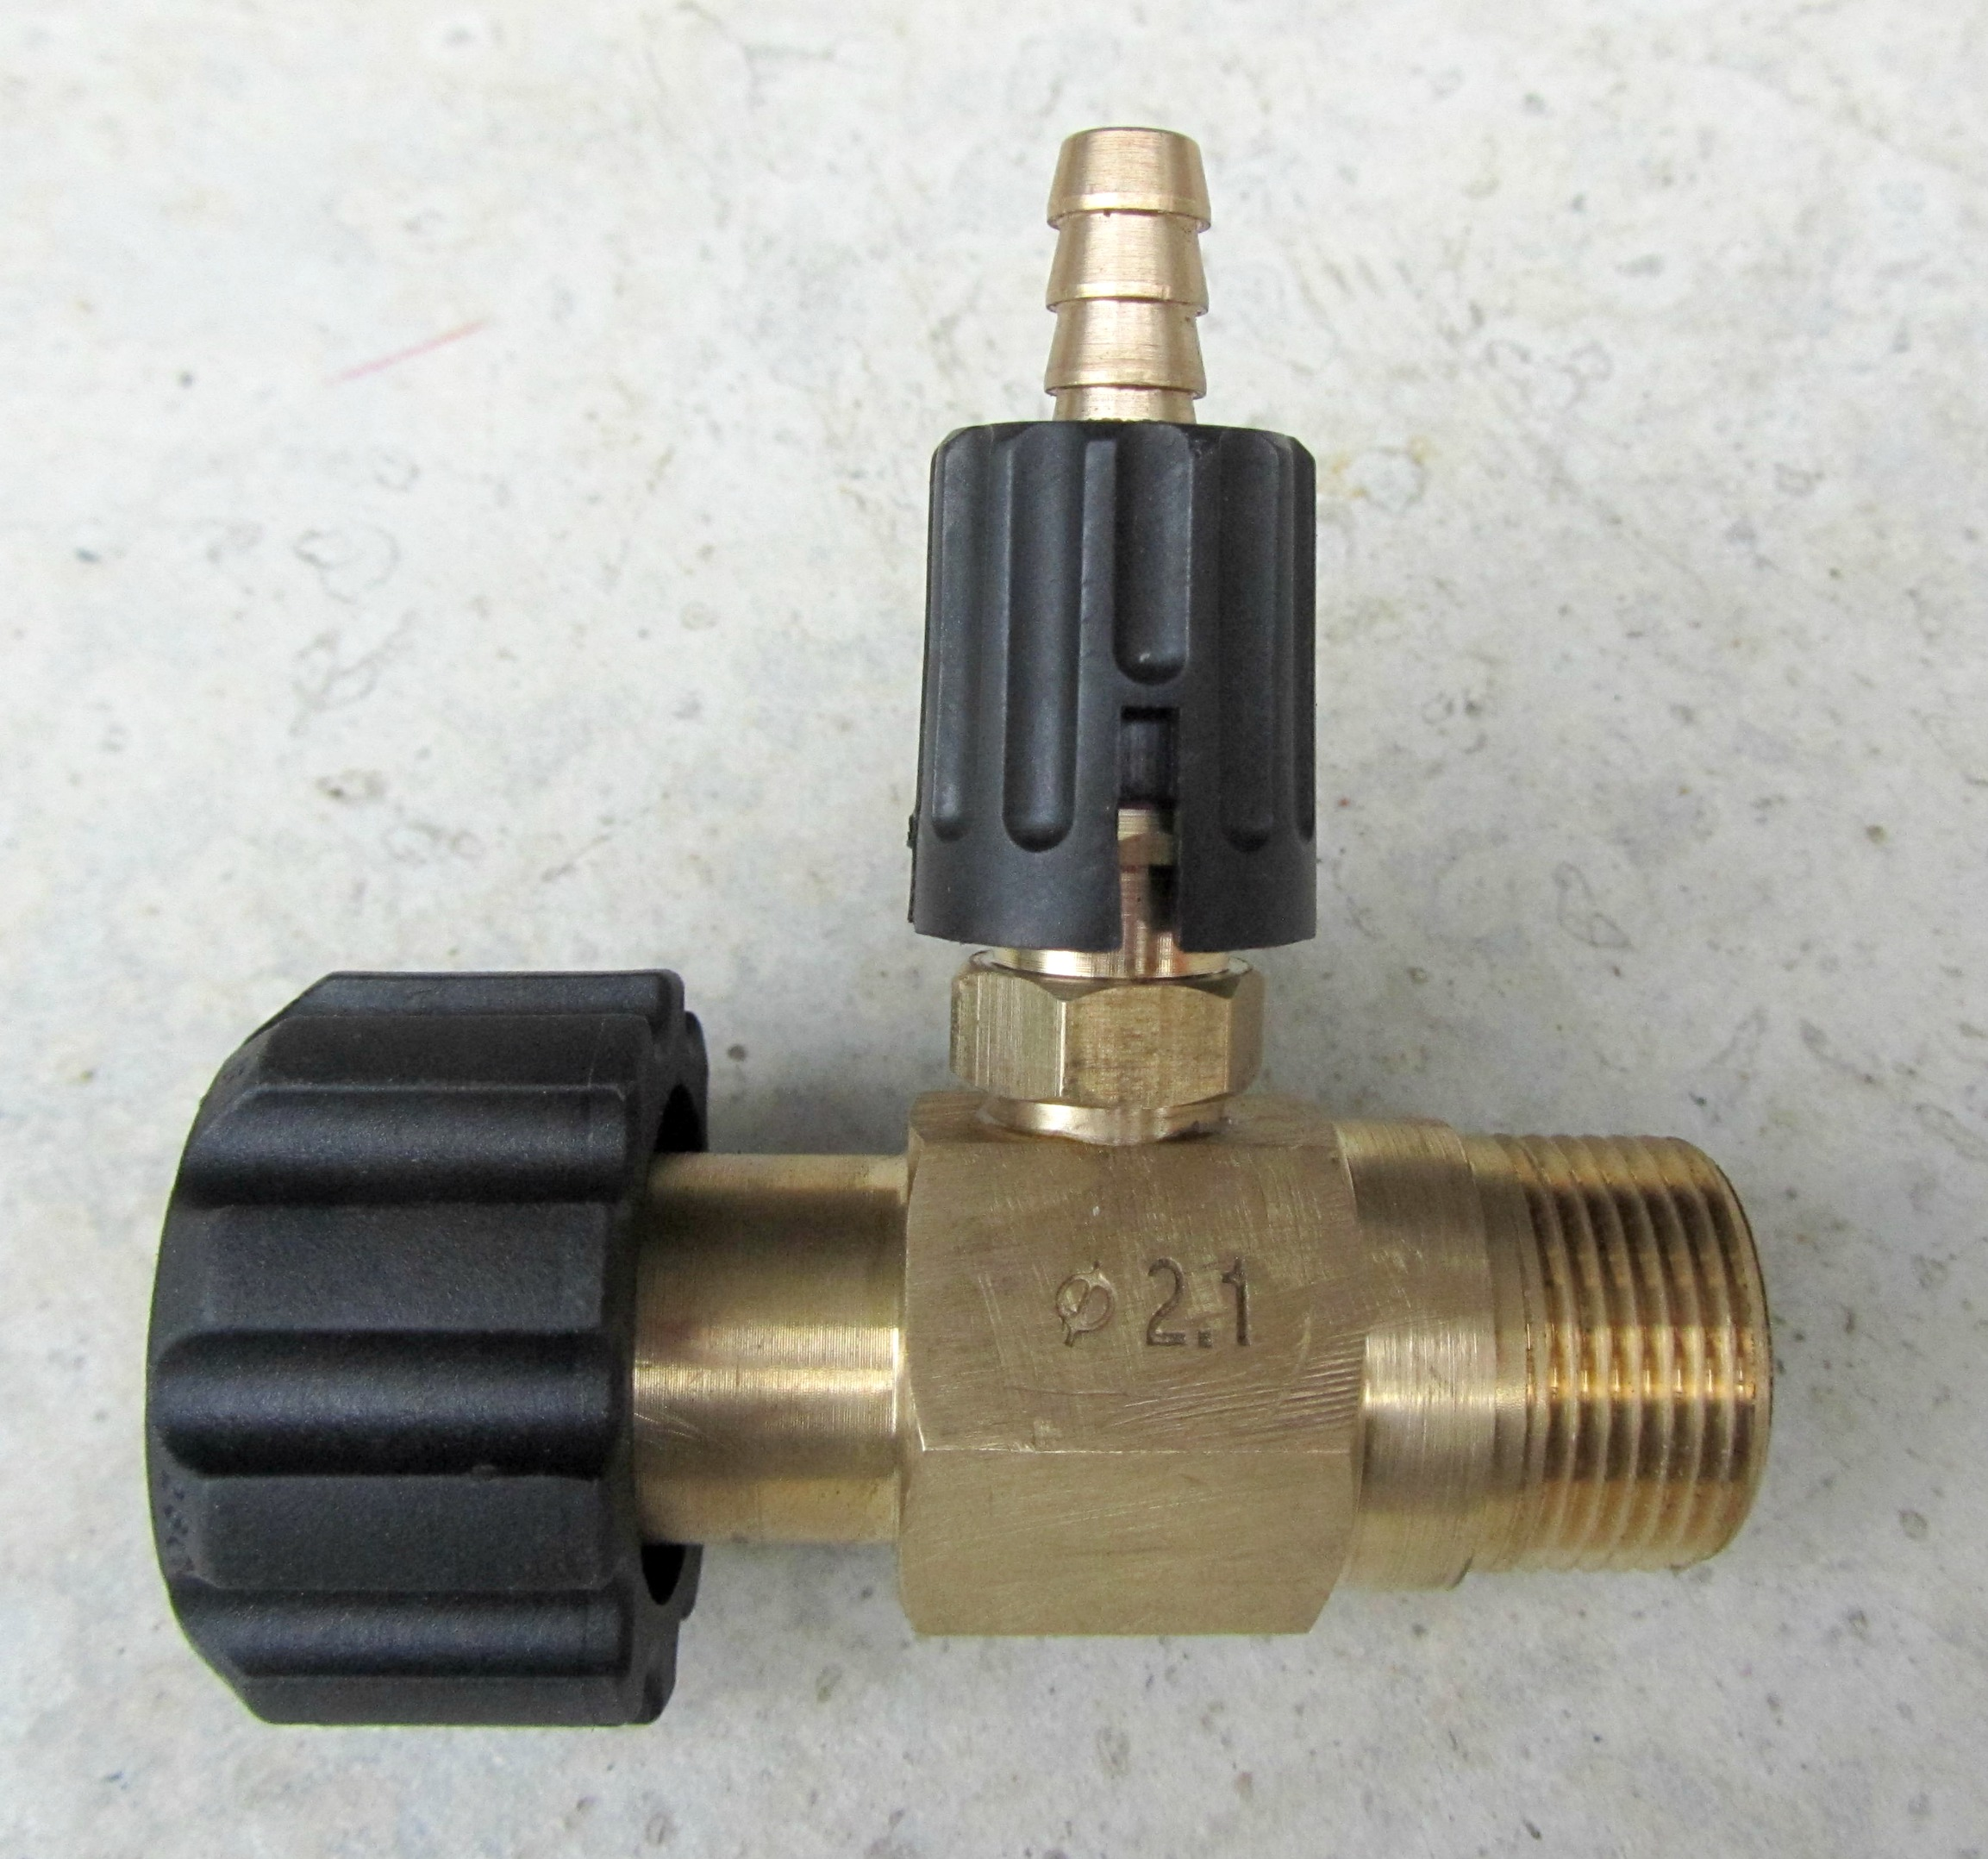 Adjustable Detergent Injector 22mm M|F